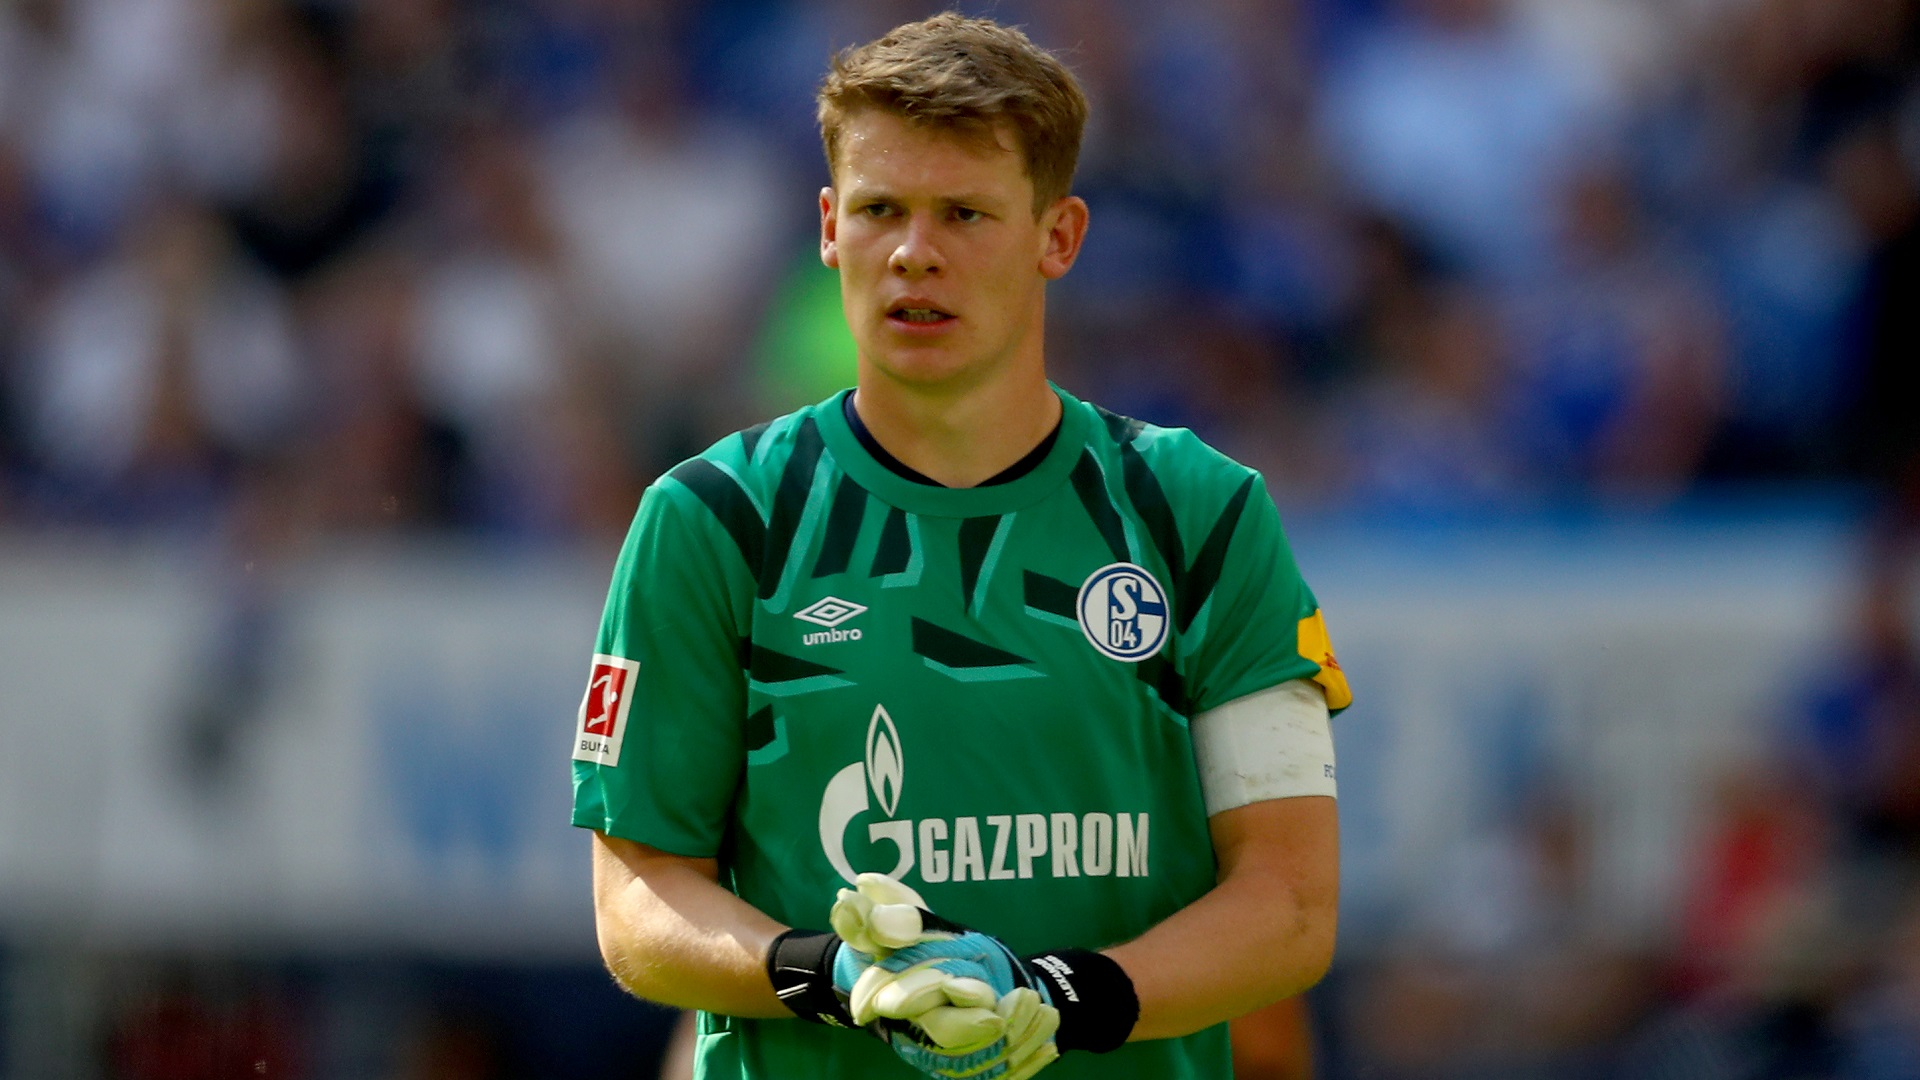 No reason for Germany to drop Bayern's Neuer for Barca's Ter Stegen - Kahn